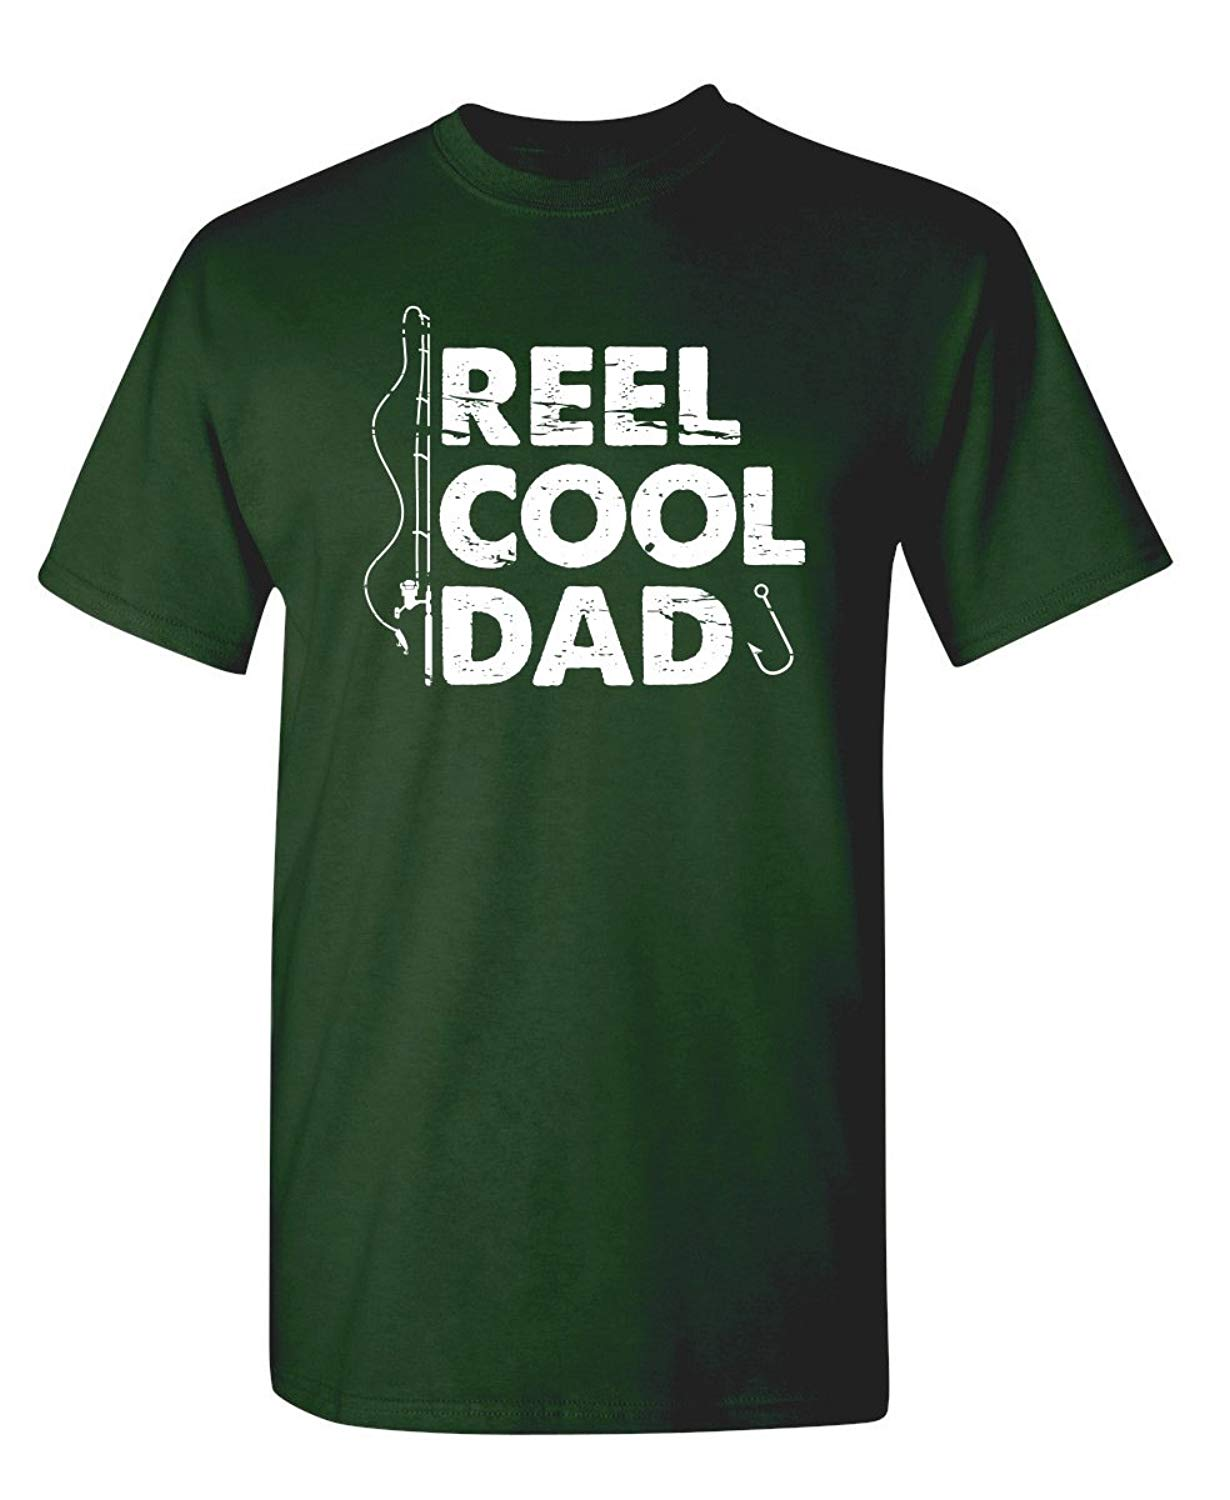 Reel Cool Dad Fathers Day Gift Idea For Dad Novelty Humor Funny T Shirt S Forest